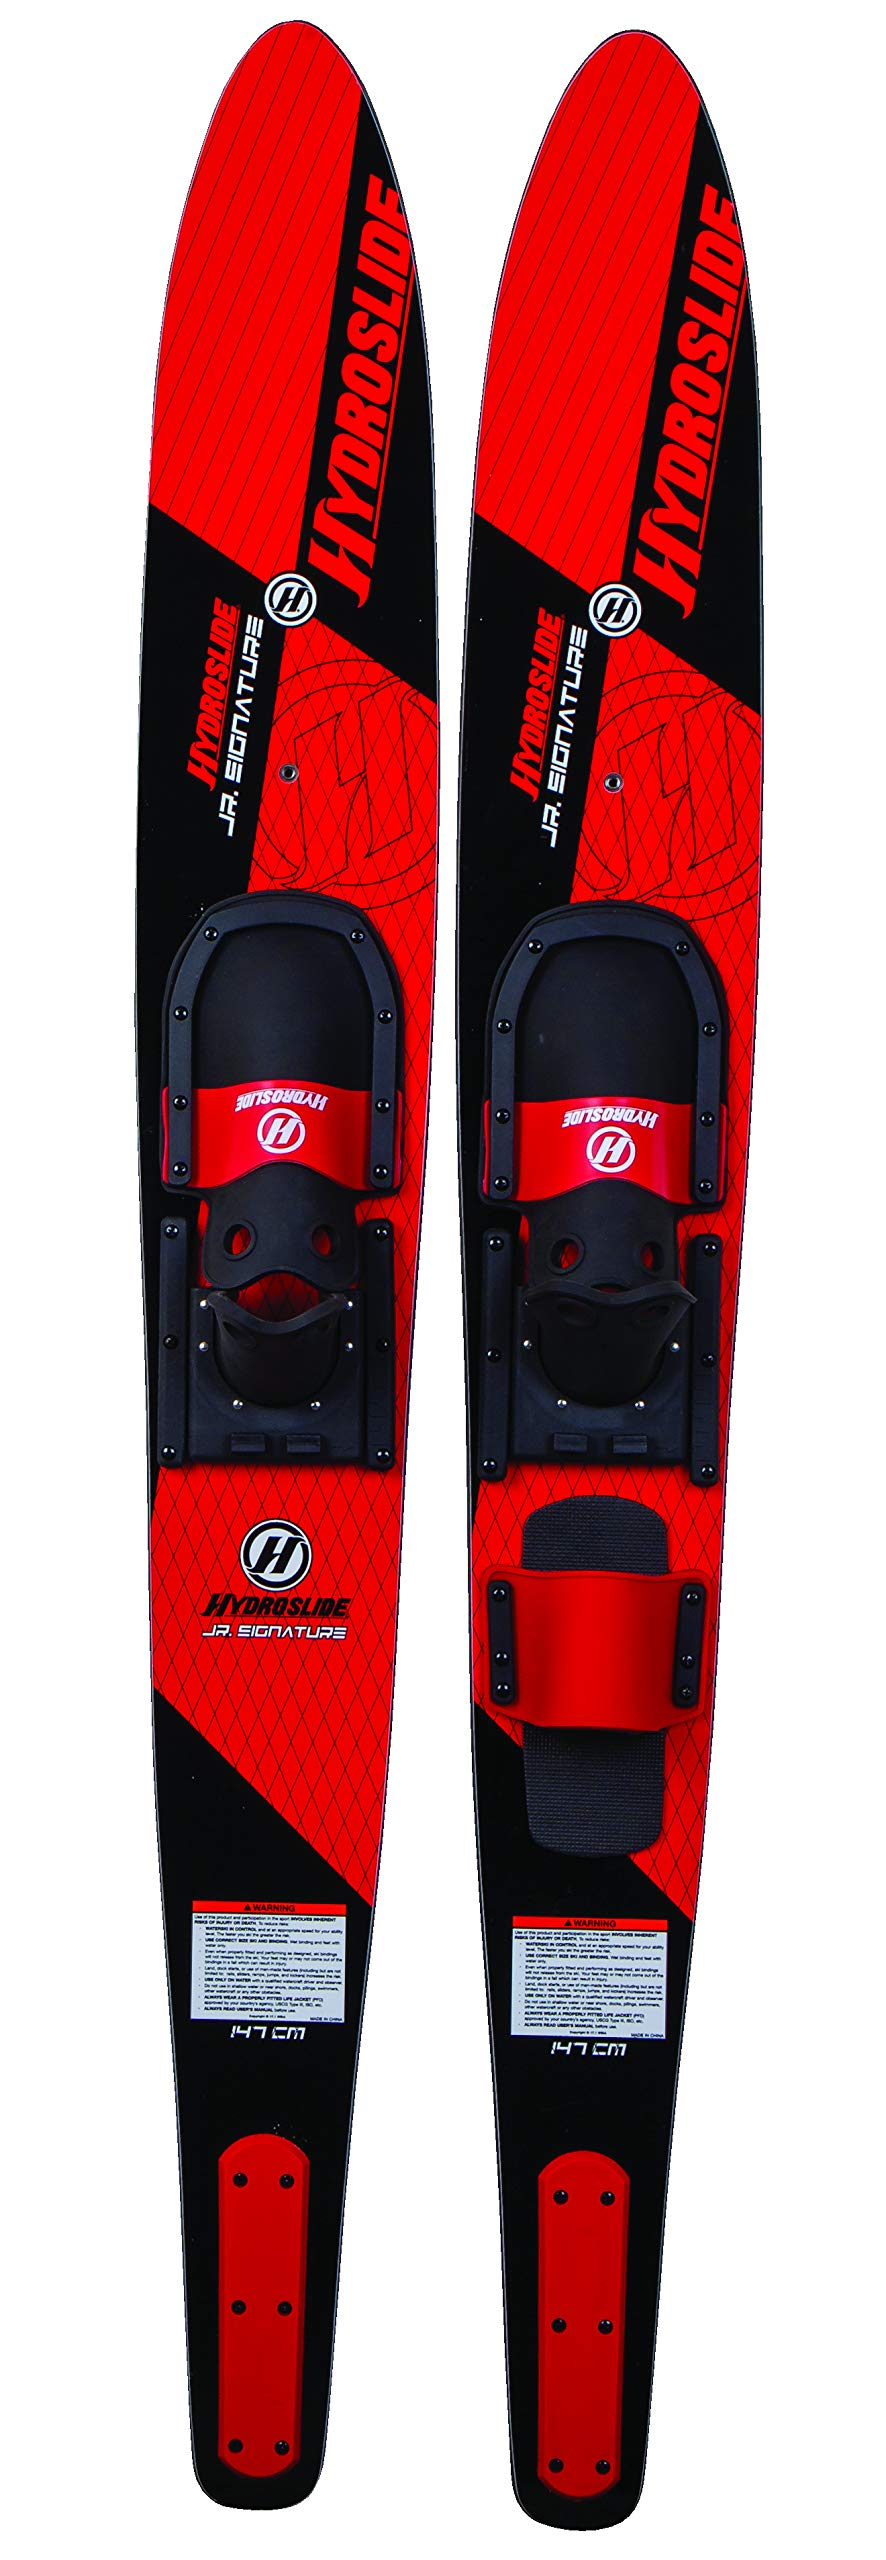 Hydroslide Signature Jr Combo Water Skis, 58''